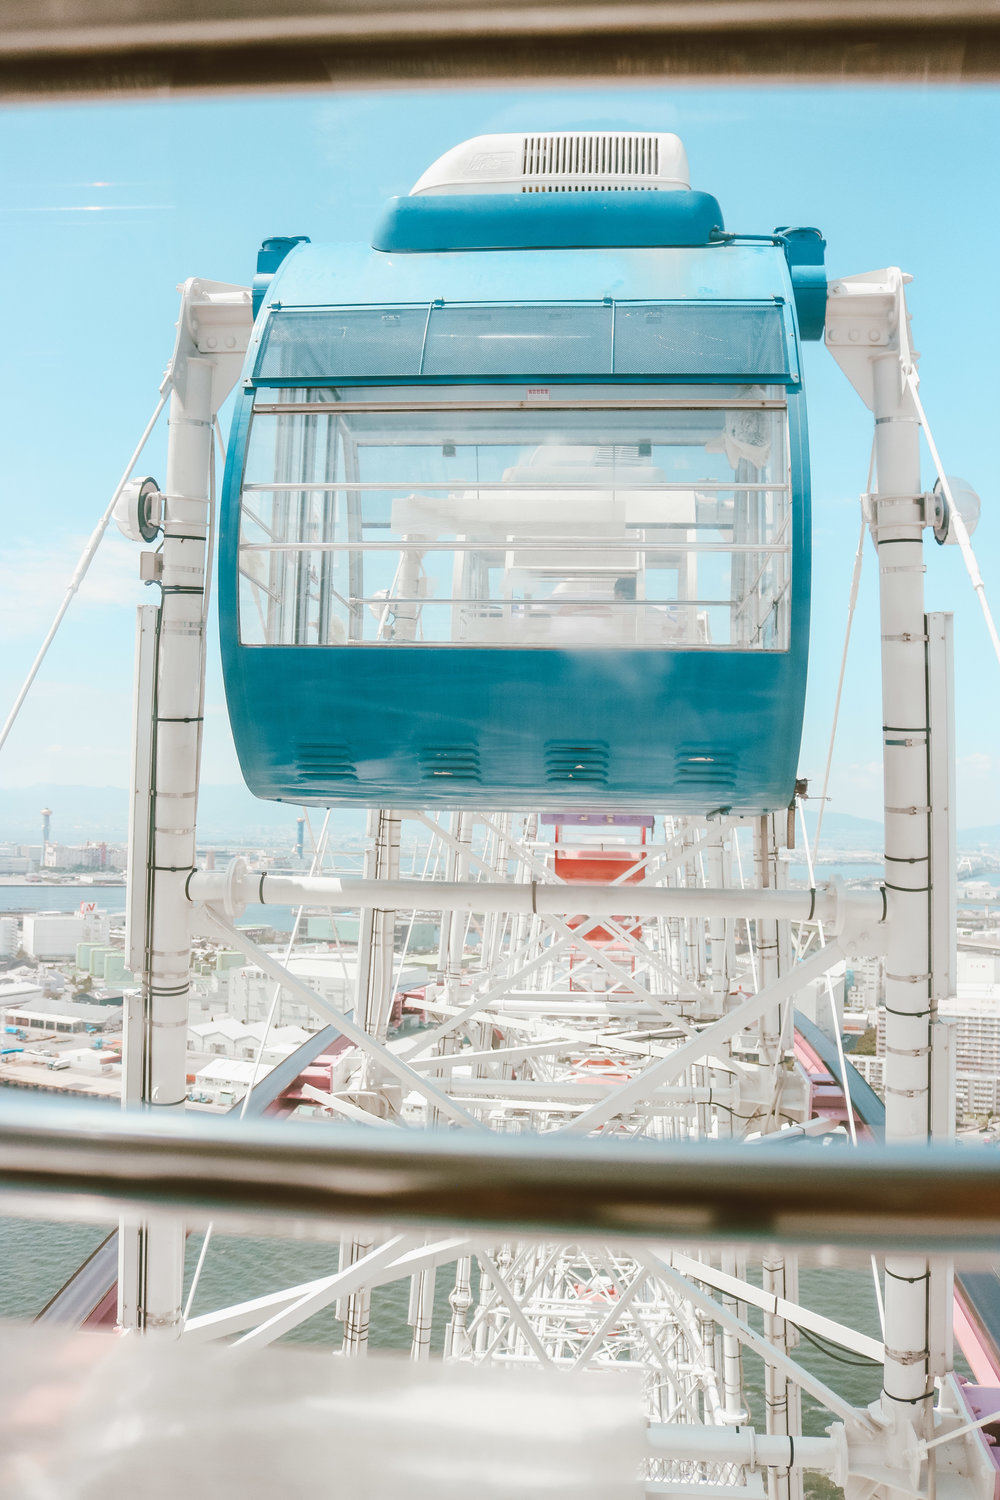 Osaka Aquarium and Tempozan Ferris Wheel | SaltWaterVibes